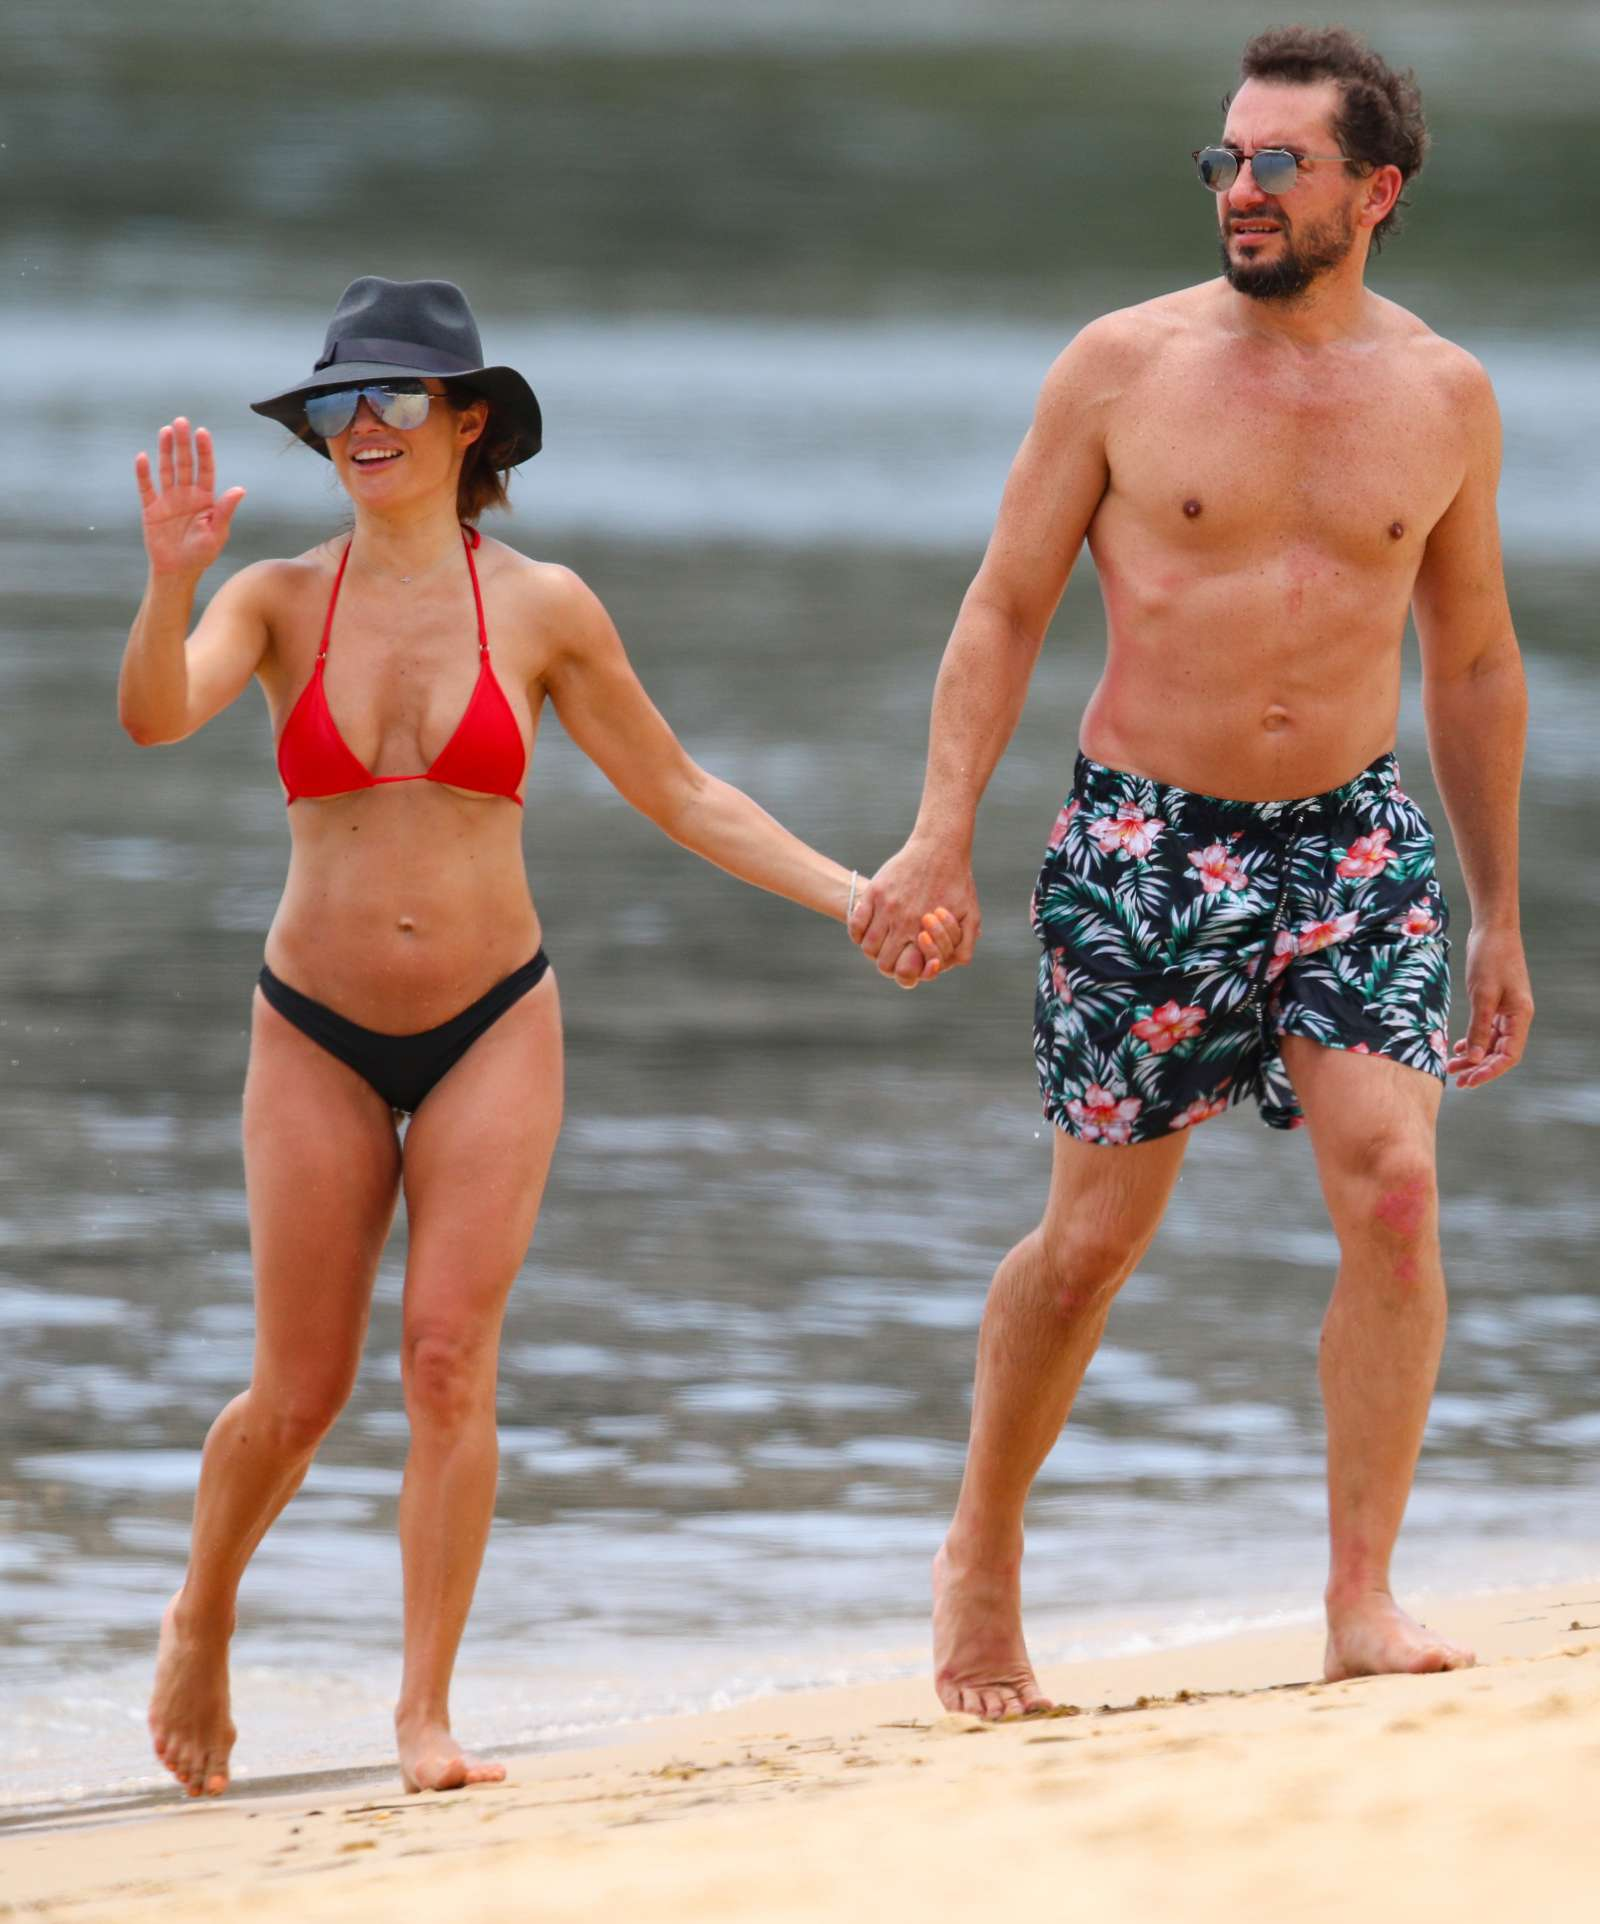 Ada Nicodemou in Black and Red Bikini 2019 -08 | GotCeleb